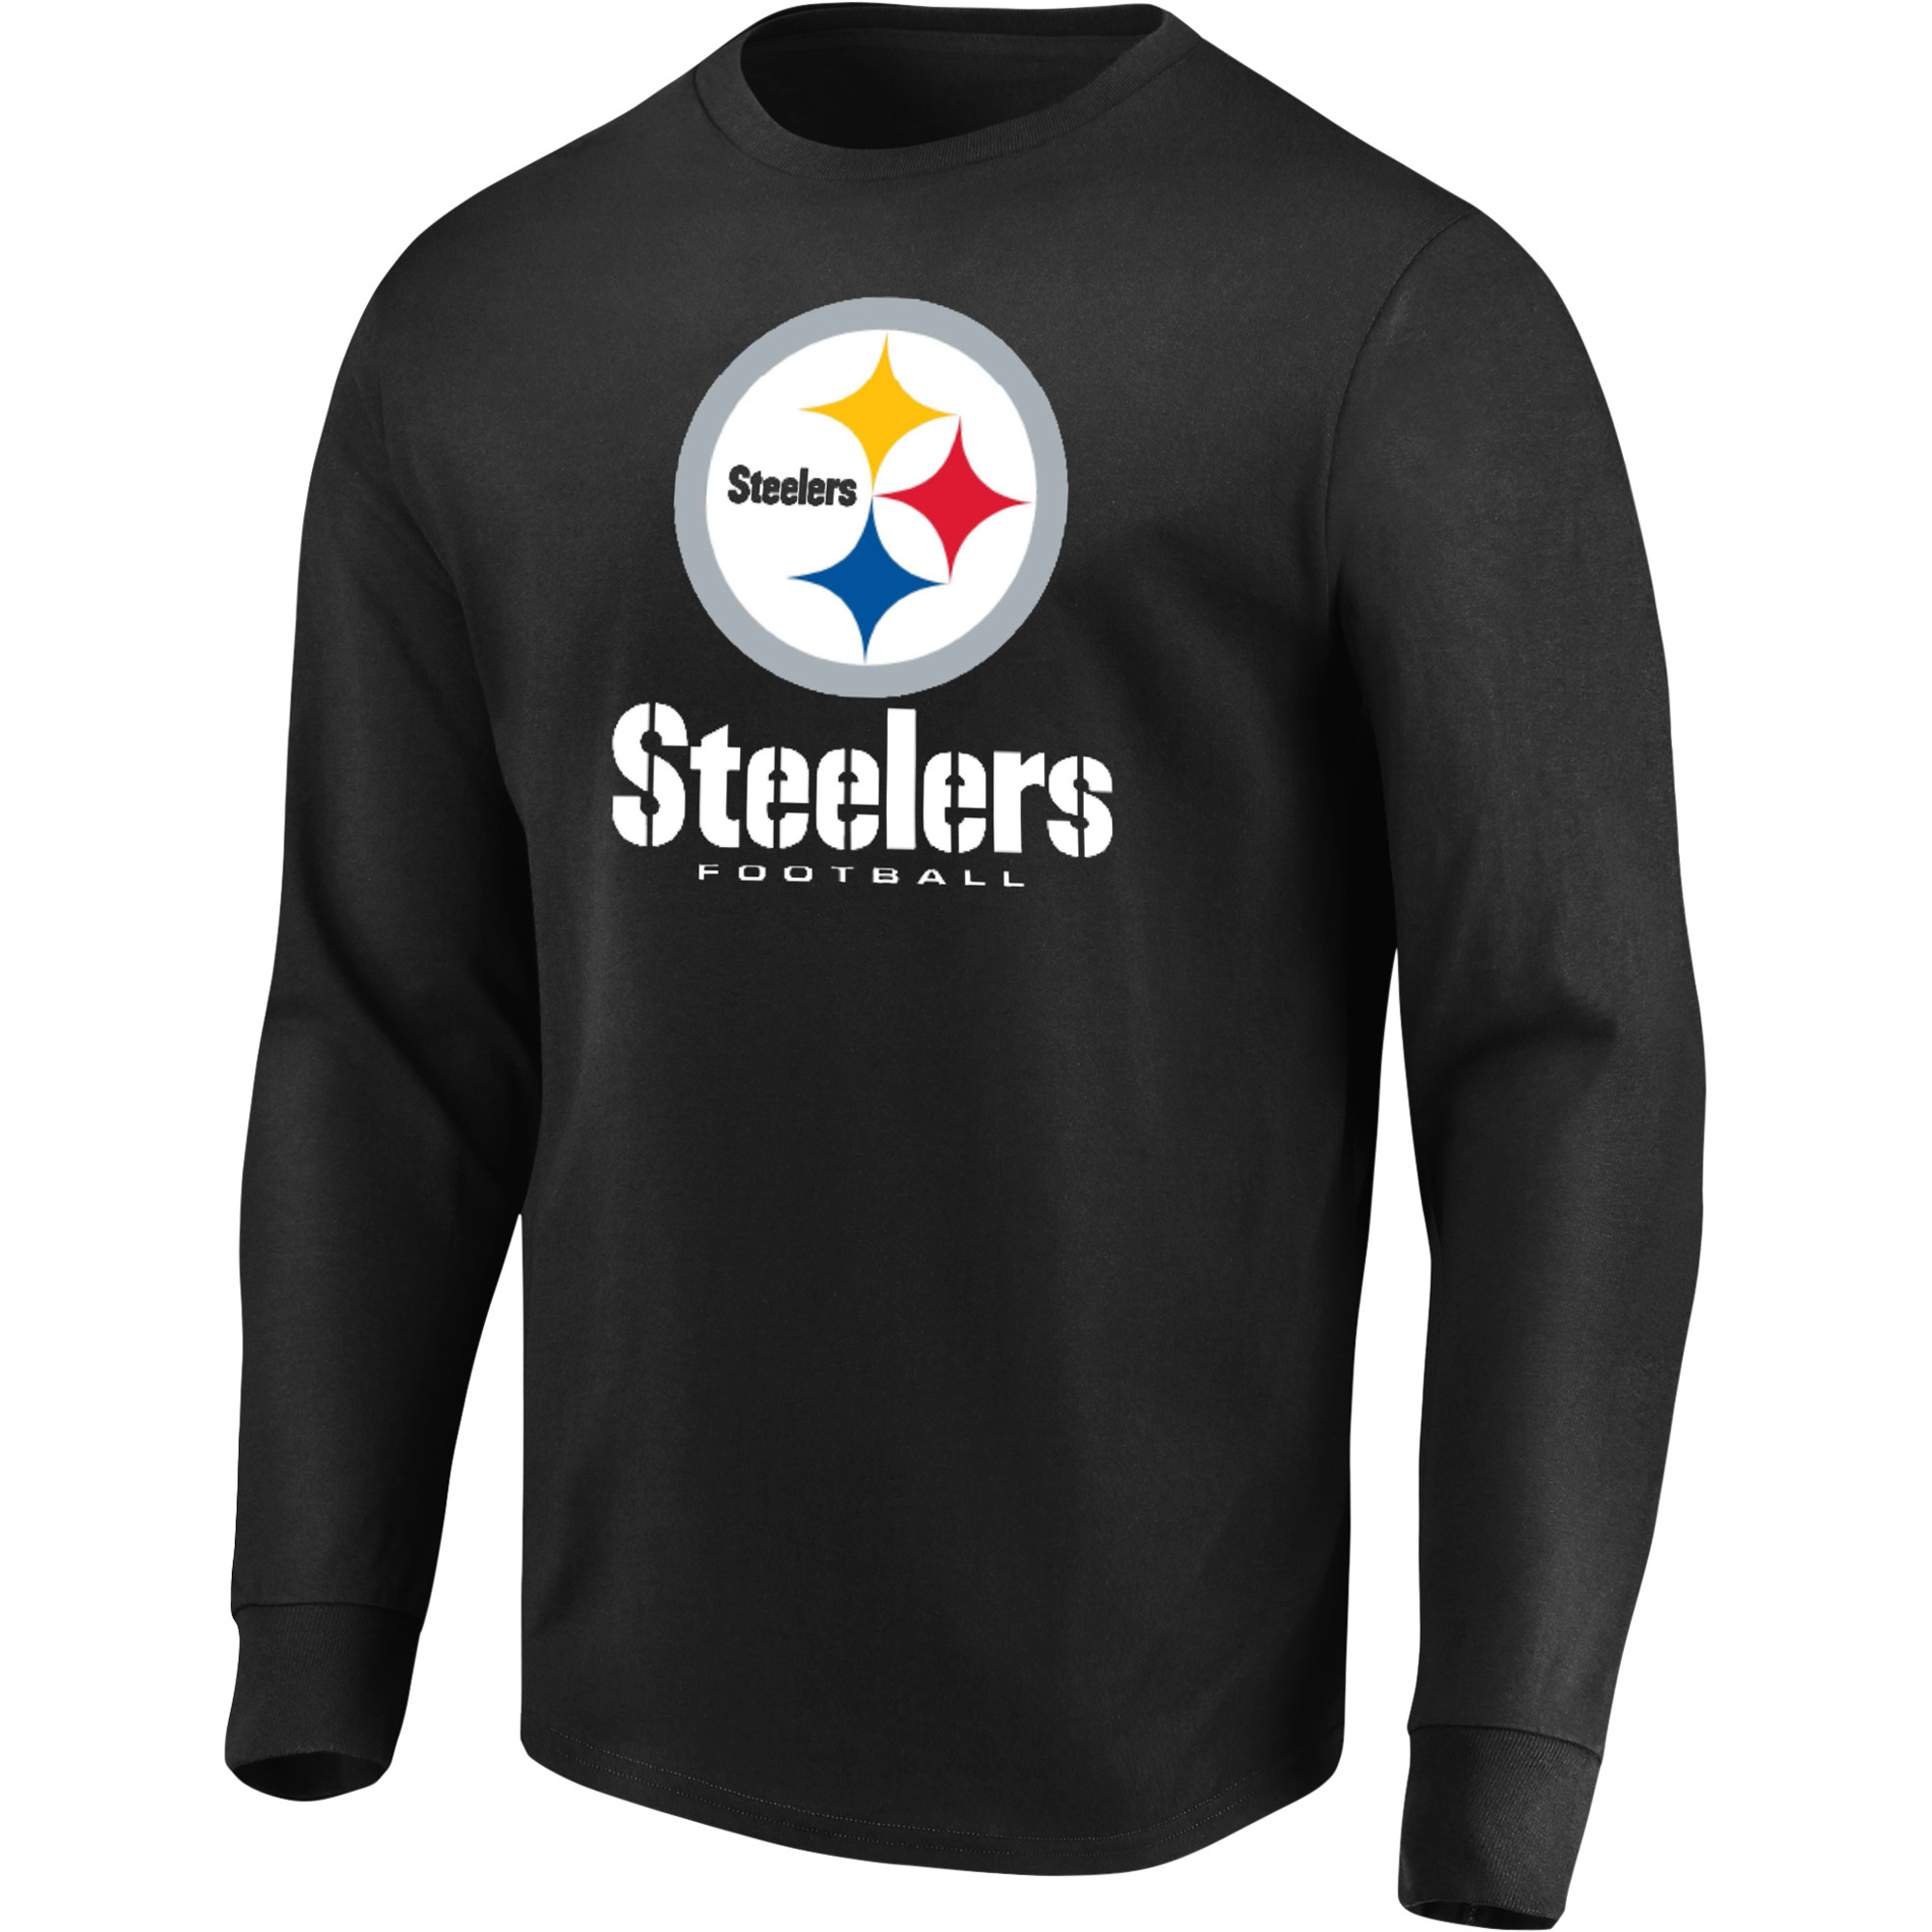 Men's Majestic Black Pittsburgh Steelers Our Team Long Sleeve T-Shirt